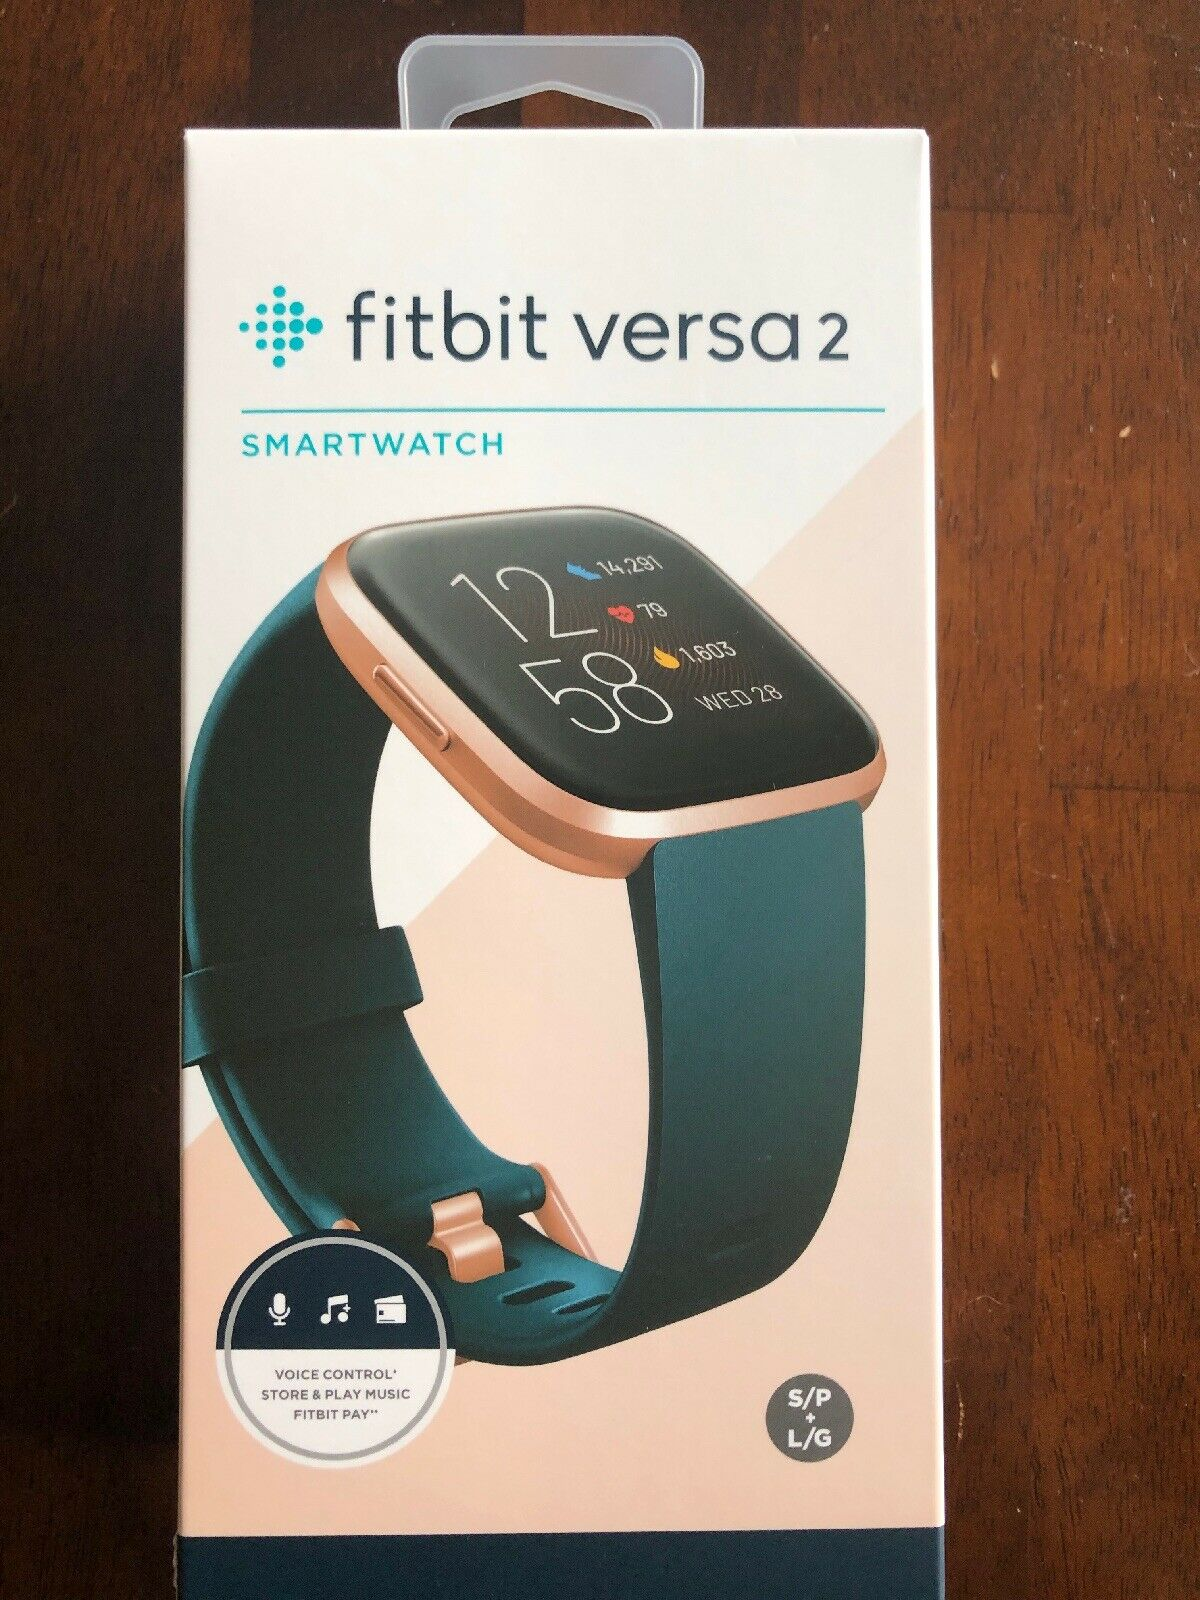 Fitbit Versa 2 Health And Fitness Smart  Watch, Emerald/copper Rose Aluminum NEW 1